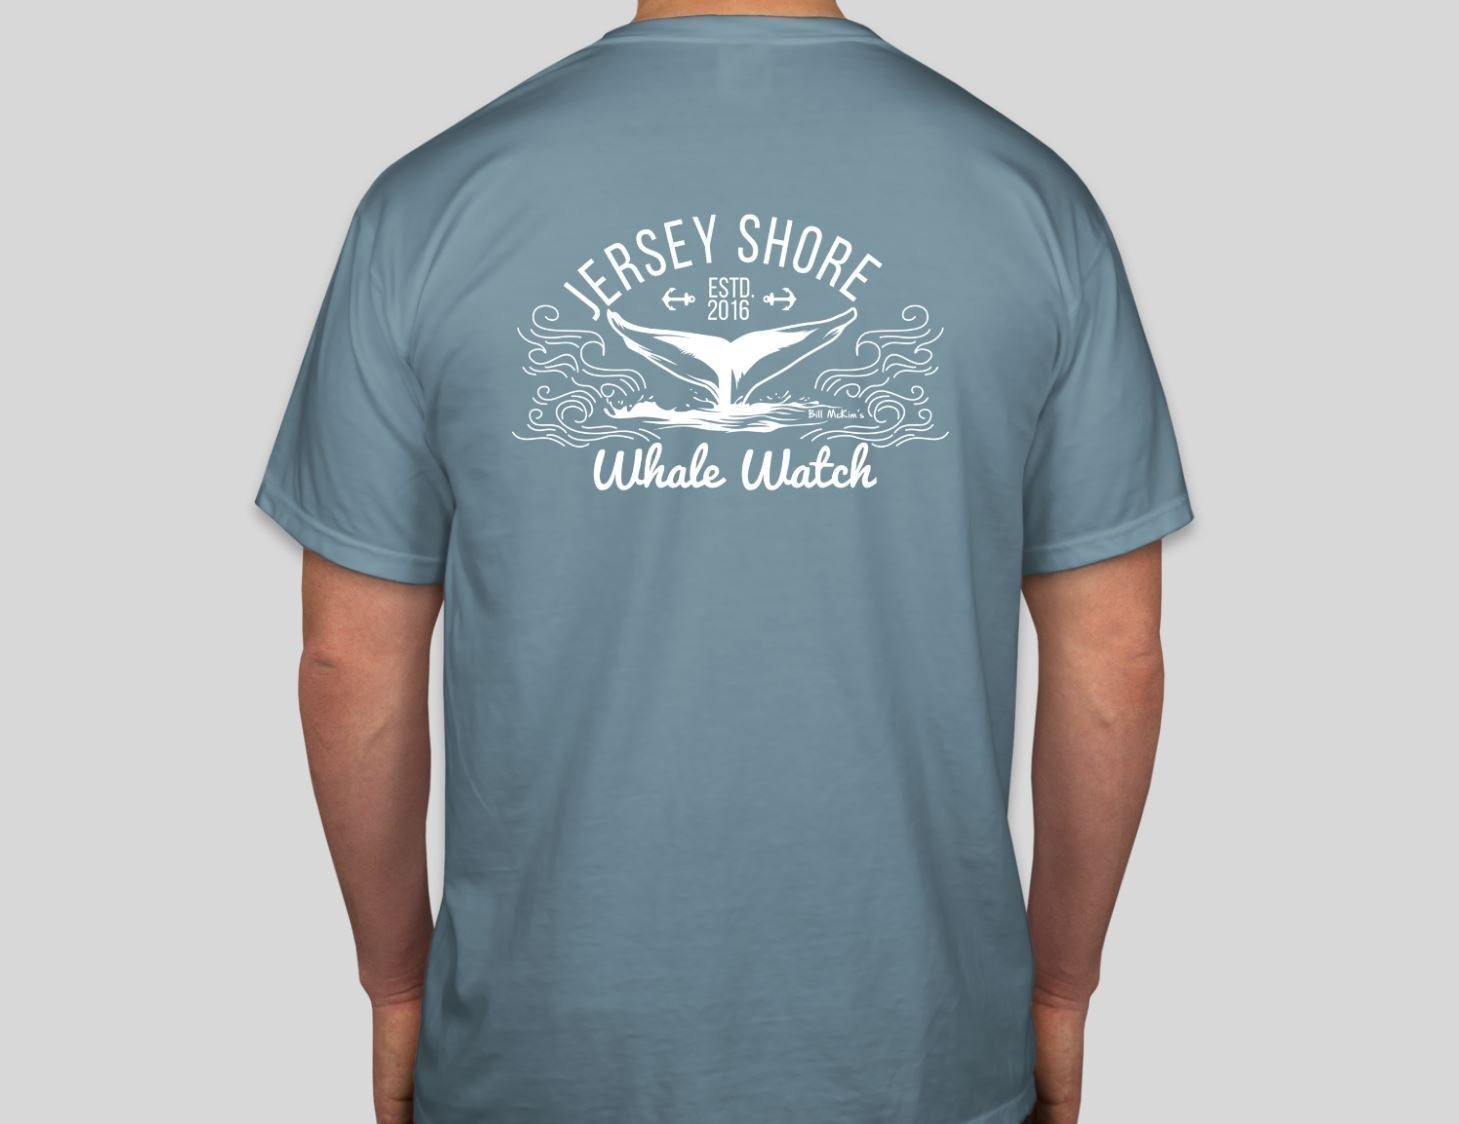 Jersey Shore Whale Watch Tshirt Amazing Quality Preshrunk - Bill McKim Photography -Jersey Shore whale watch tours